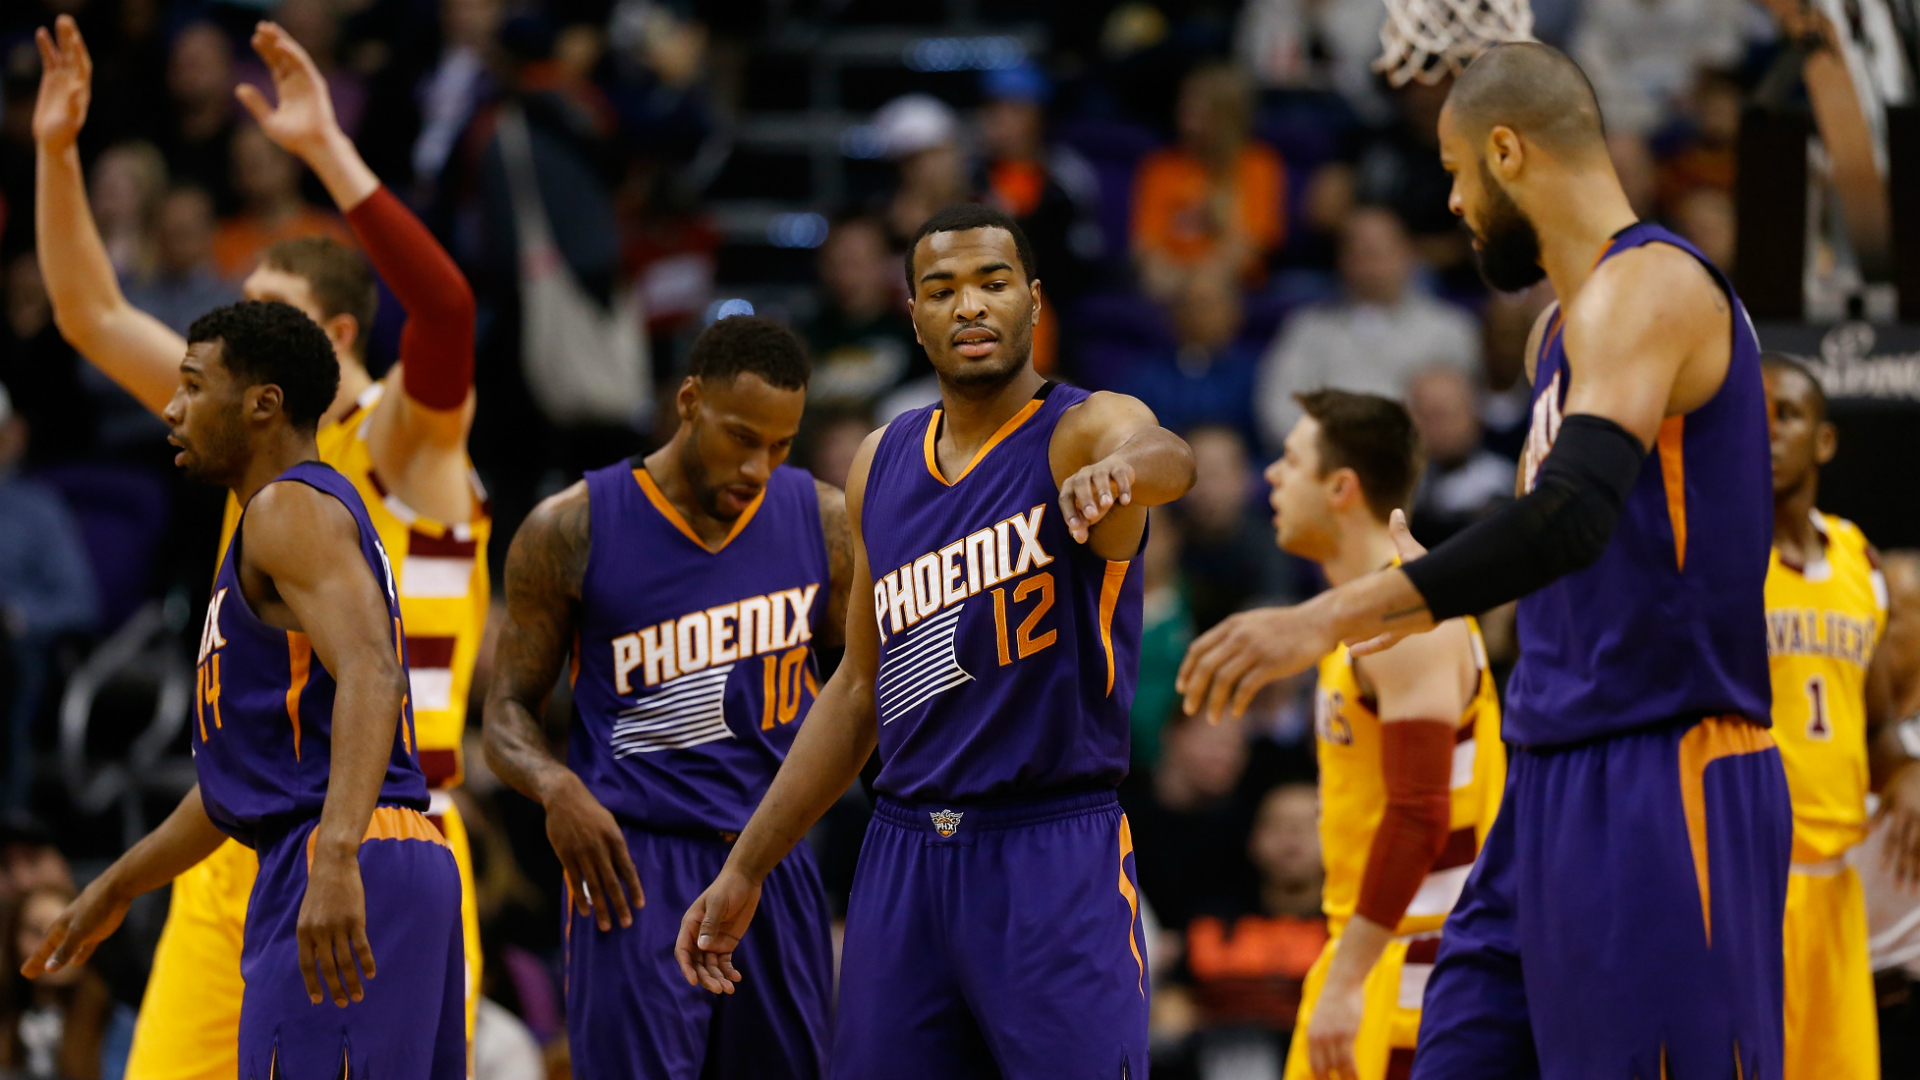 Since that breakout two seasons ago, with Bledsoe and Goran Dragic teaming  up in the backcourt, the Suns ...